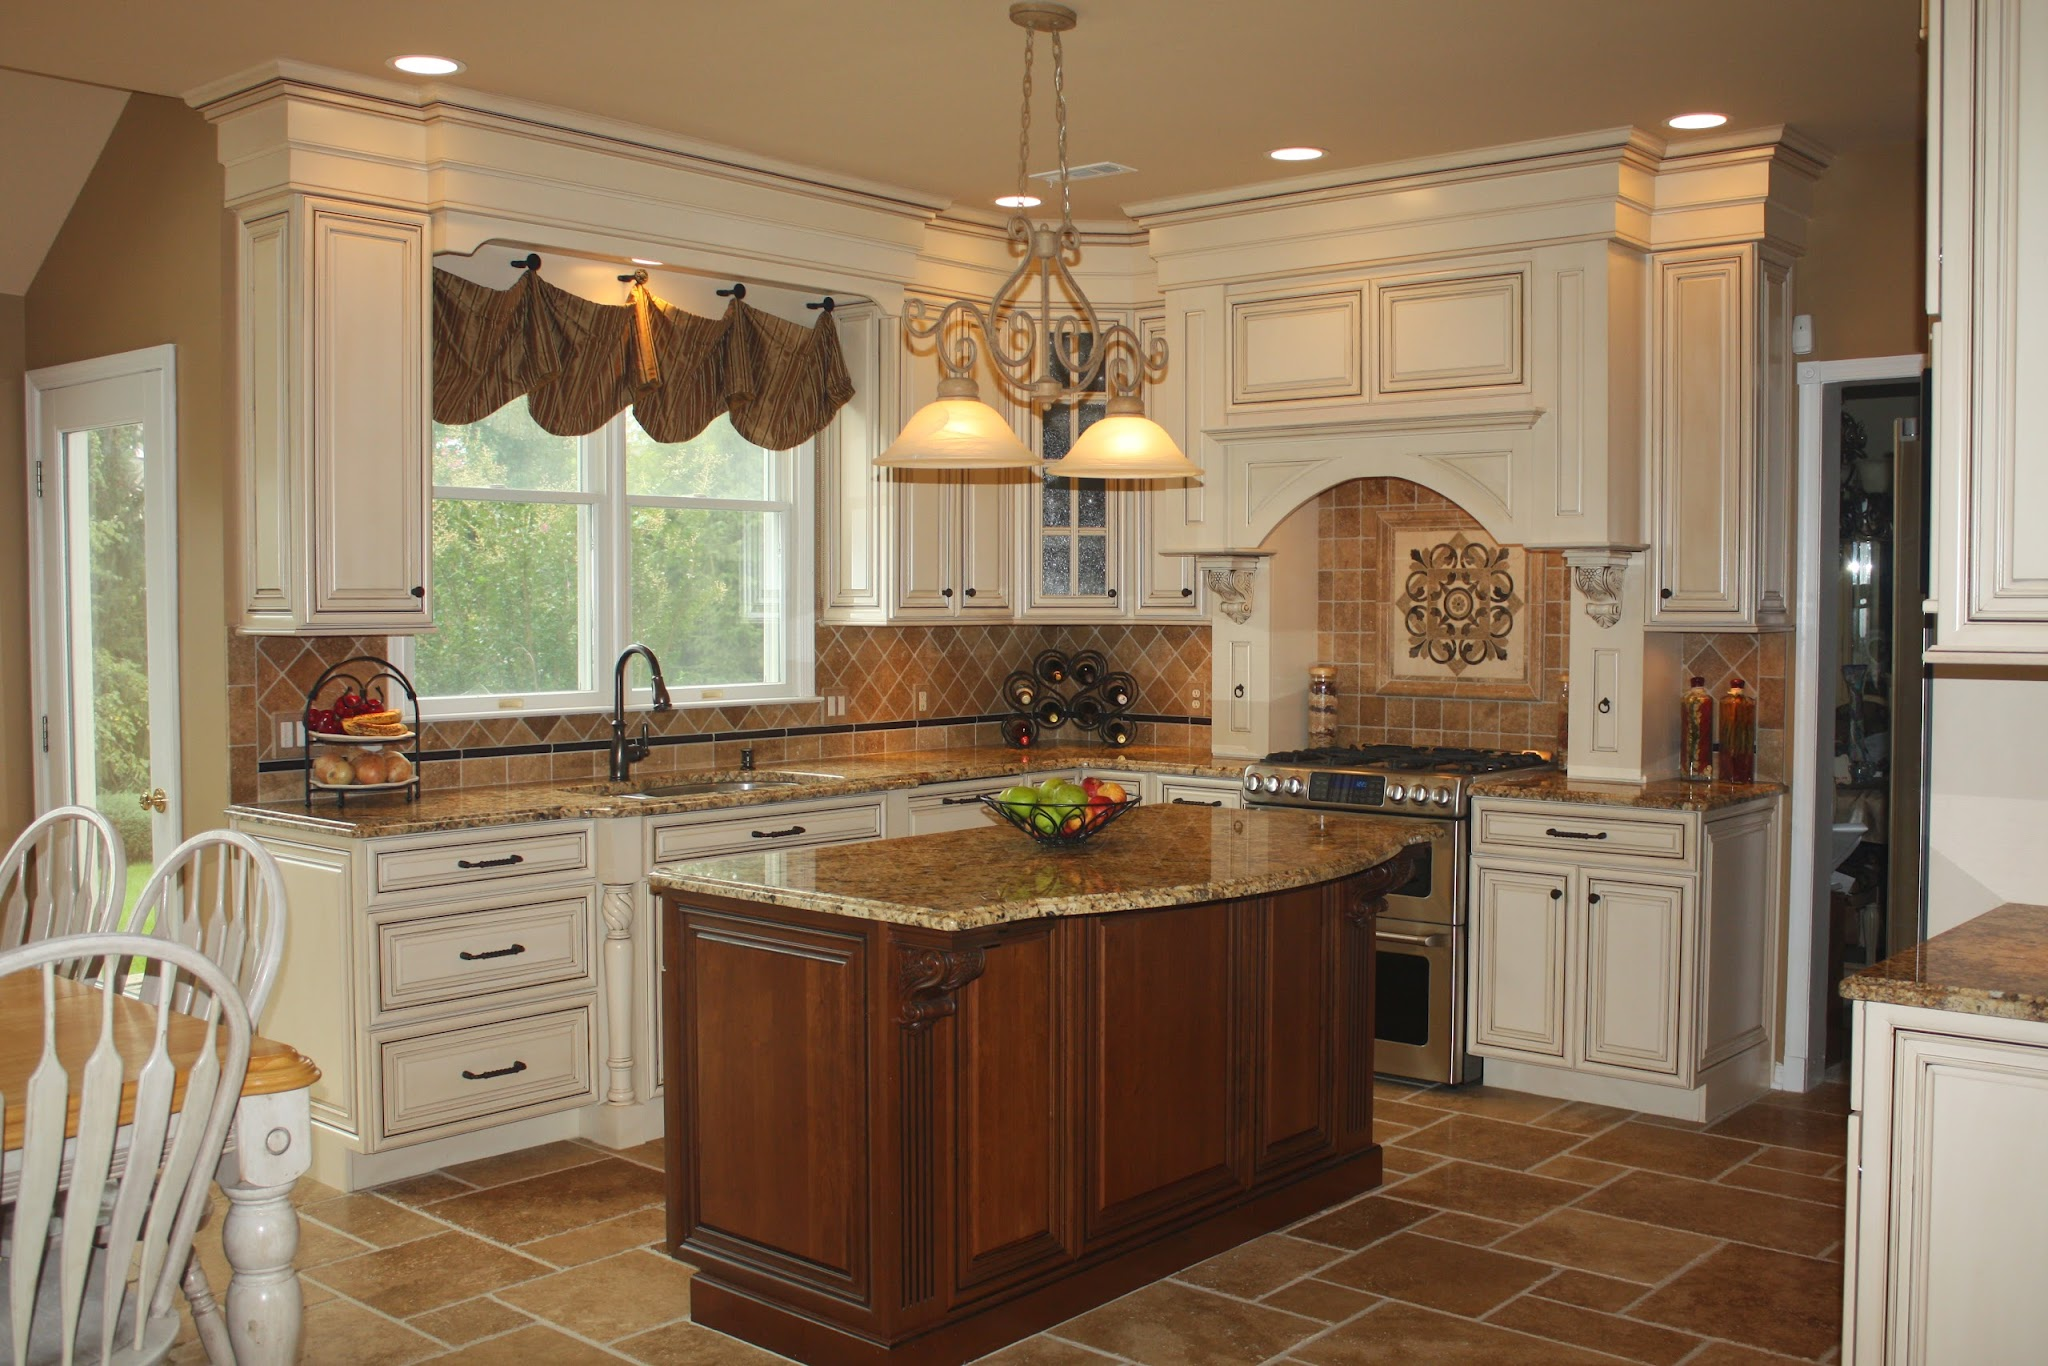 Houzz kitchen dreams house furniture for Kitchen remodel pics